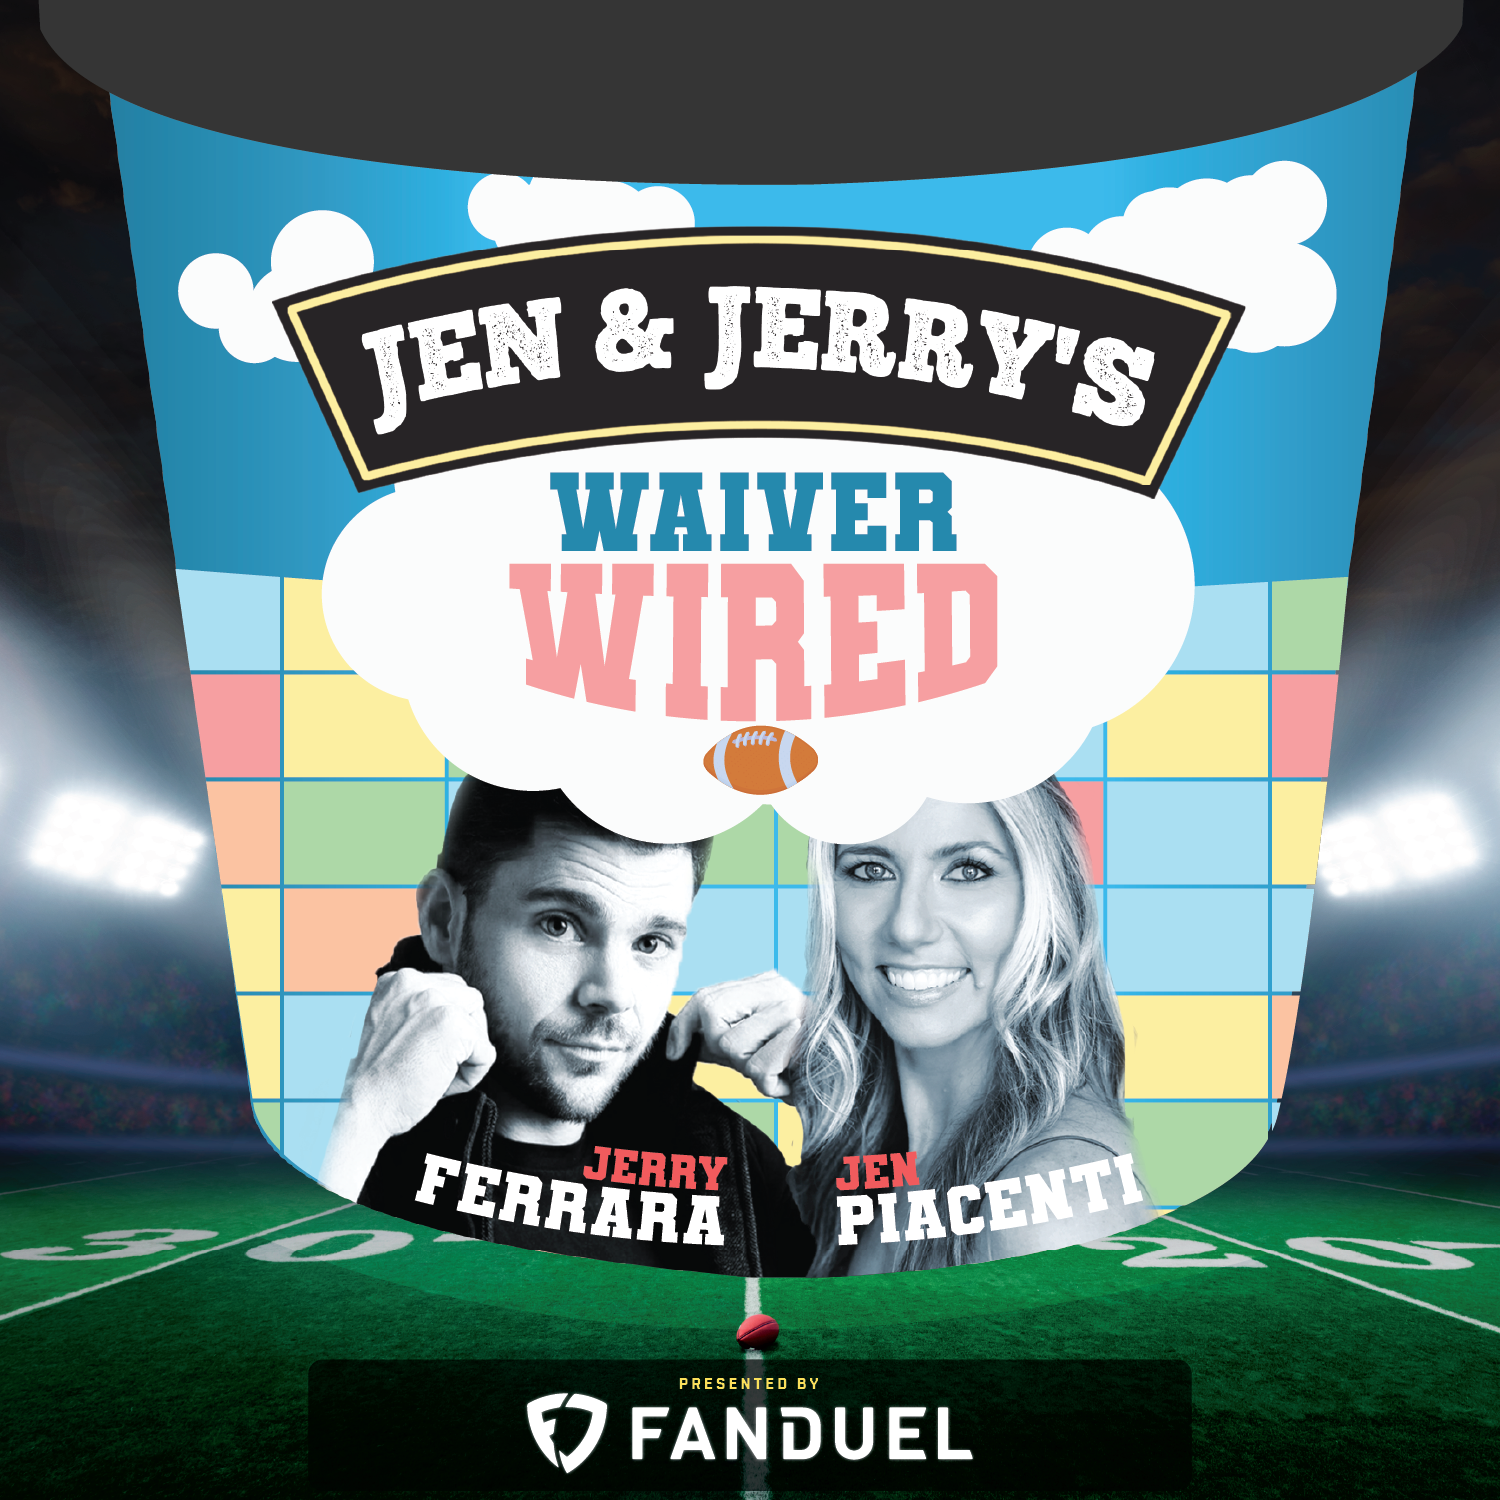 Artwork for podcast Waiver Wired